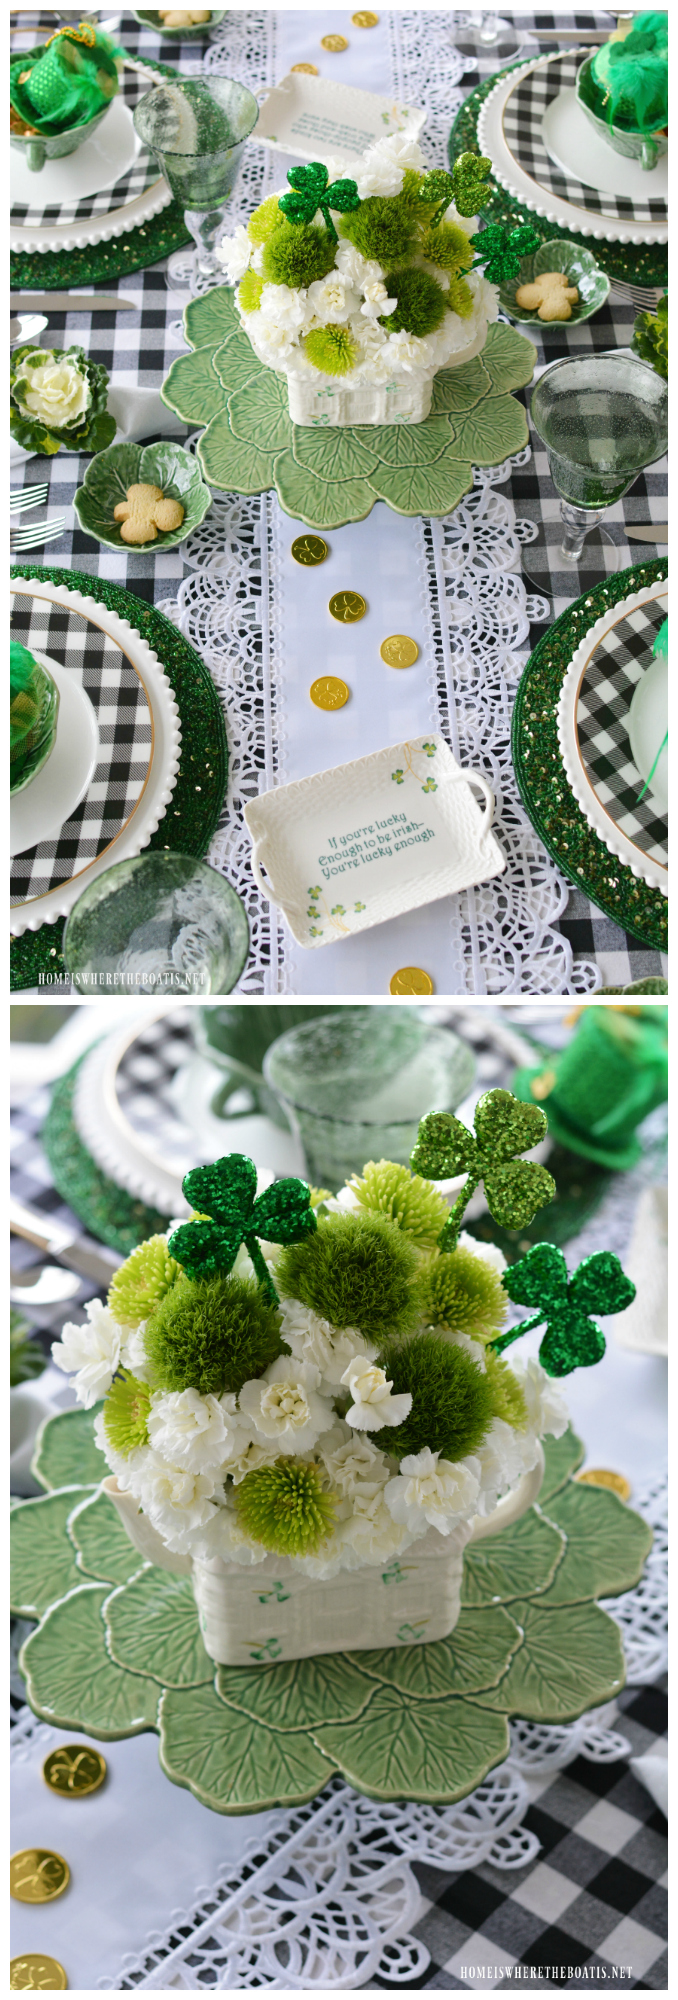 'Hats Off to Leprechauns' for a little folklore and fun in celebration of St. Patrick's Day! Create a table with mini leprechaun hats, edible pots of gold, a Belleck Irish Cottage Teapot flower arrangement and cabbage leaf bowls.